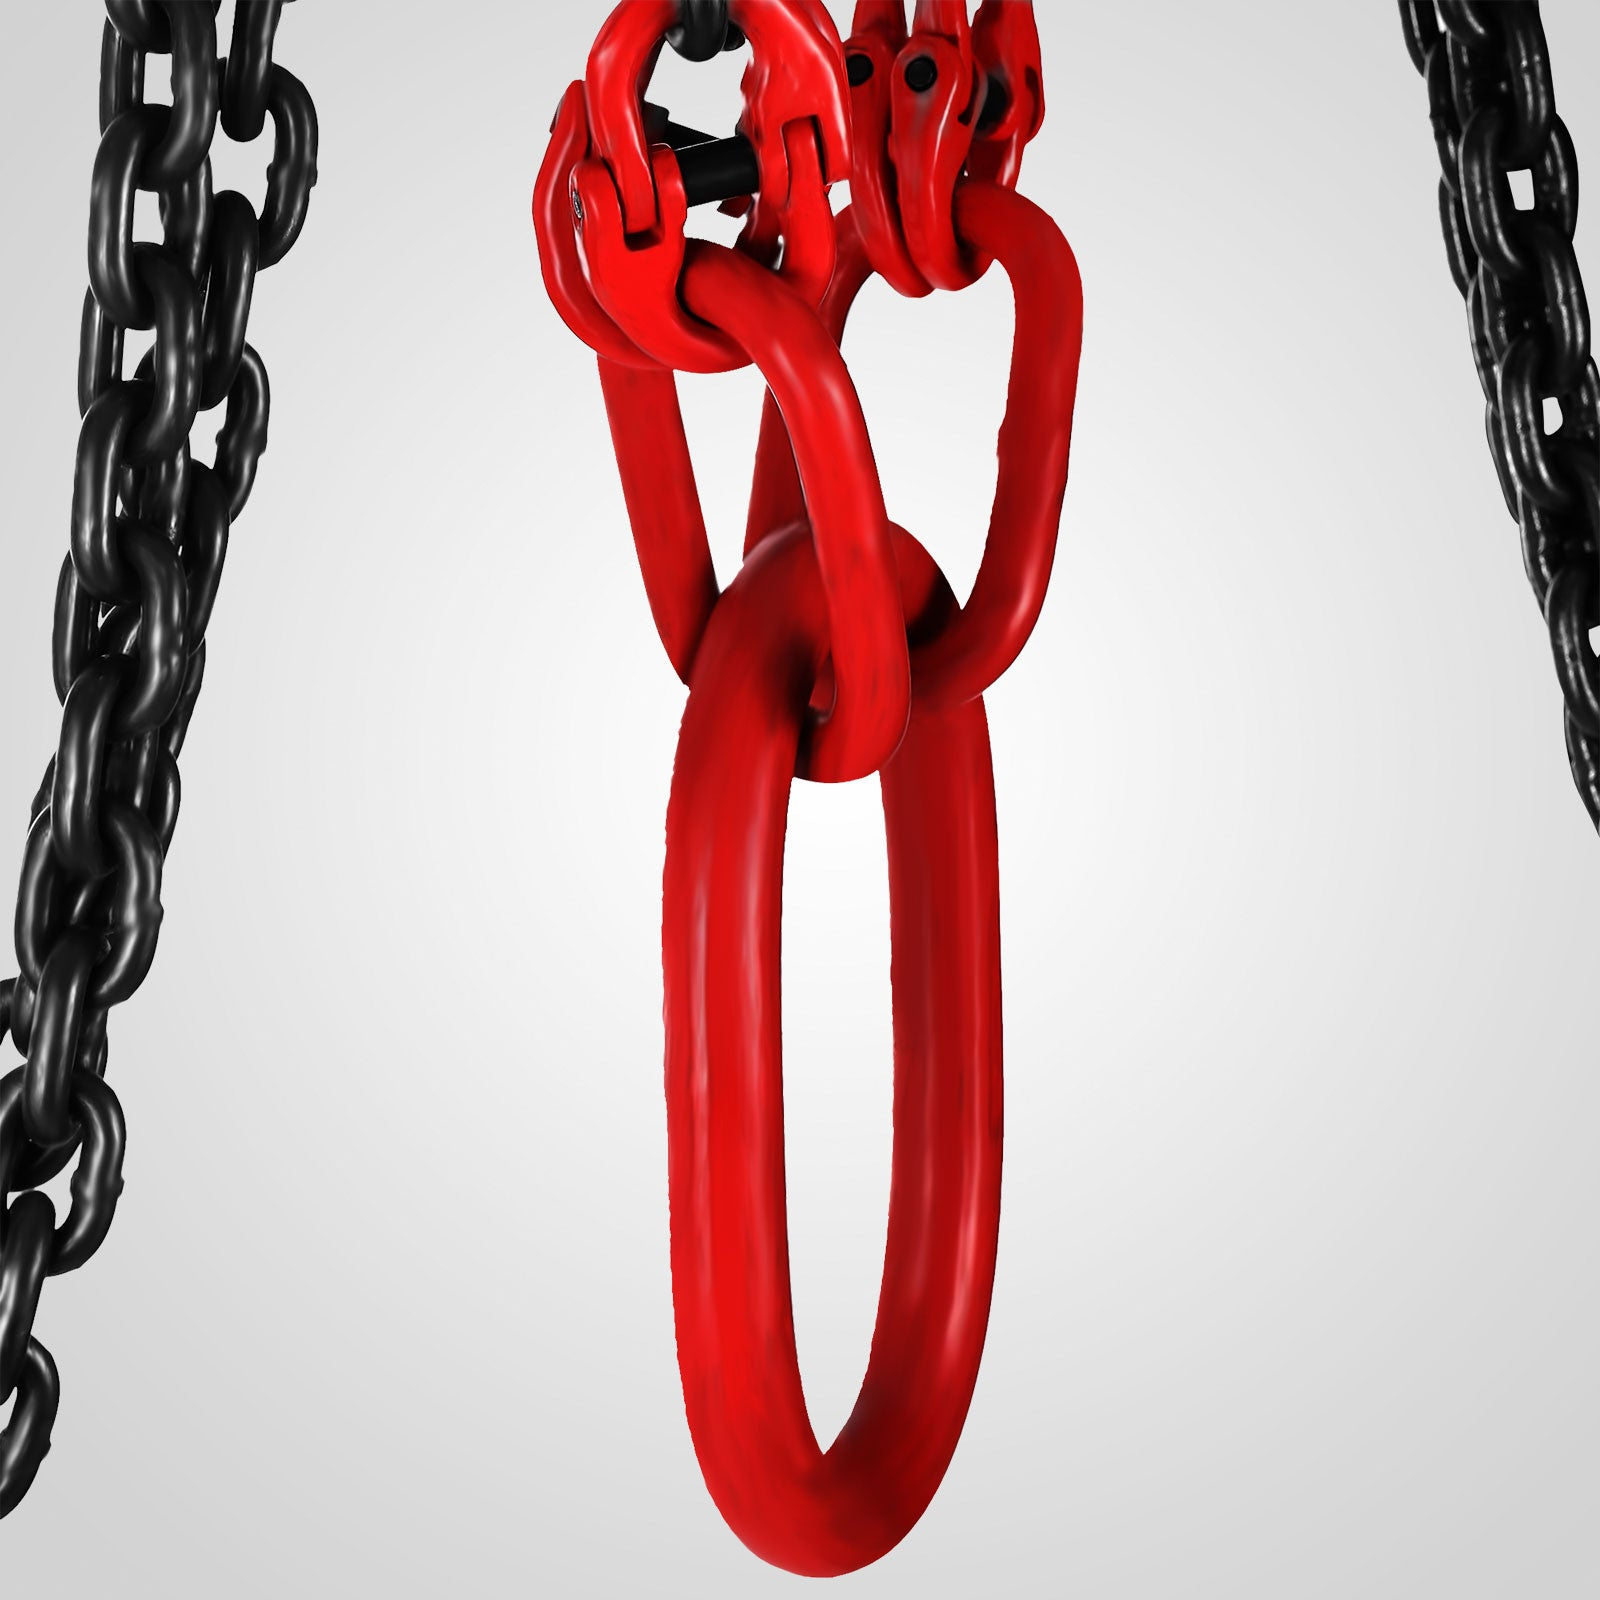 Chain Sling 5' 4 Legs With Sling Hooks Grade 80 Lifting Chain Sling